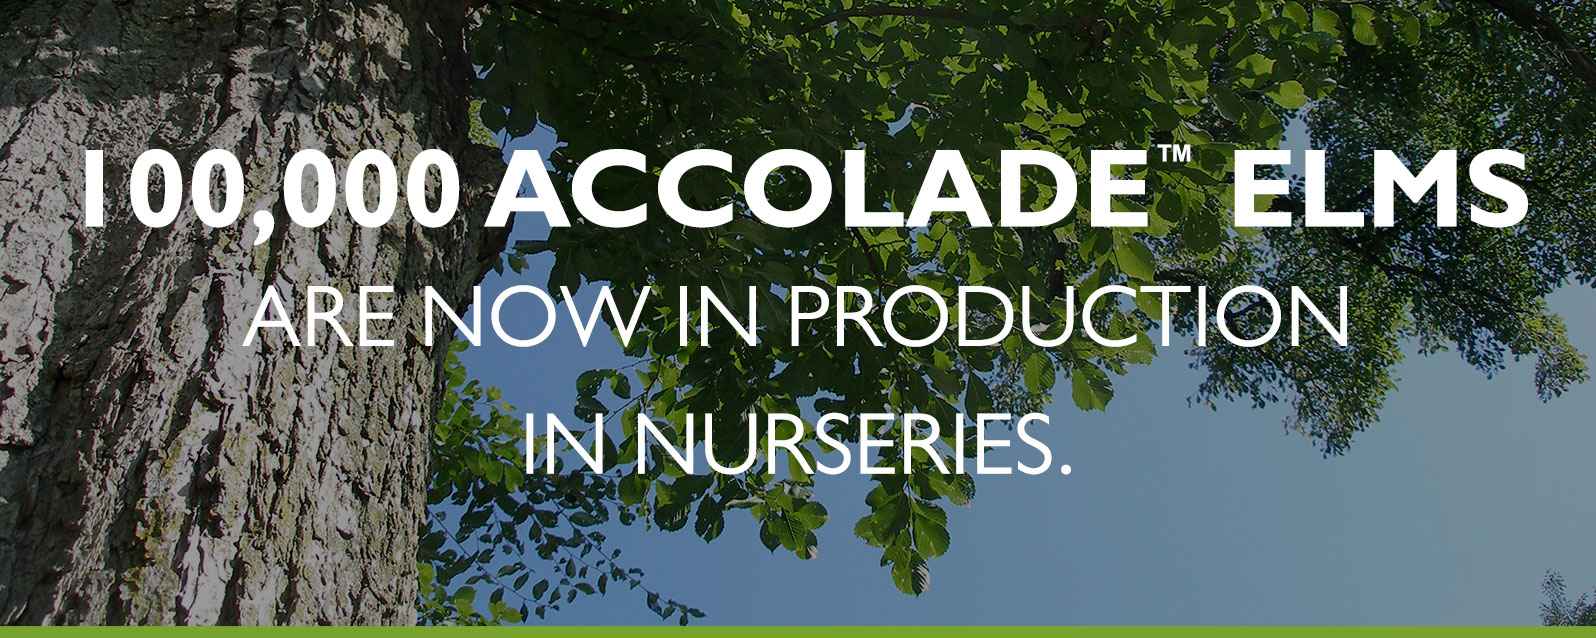 Accolade Elm in production